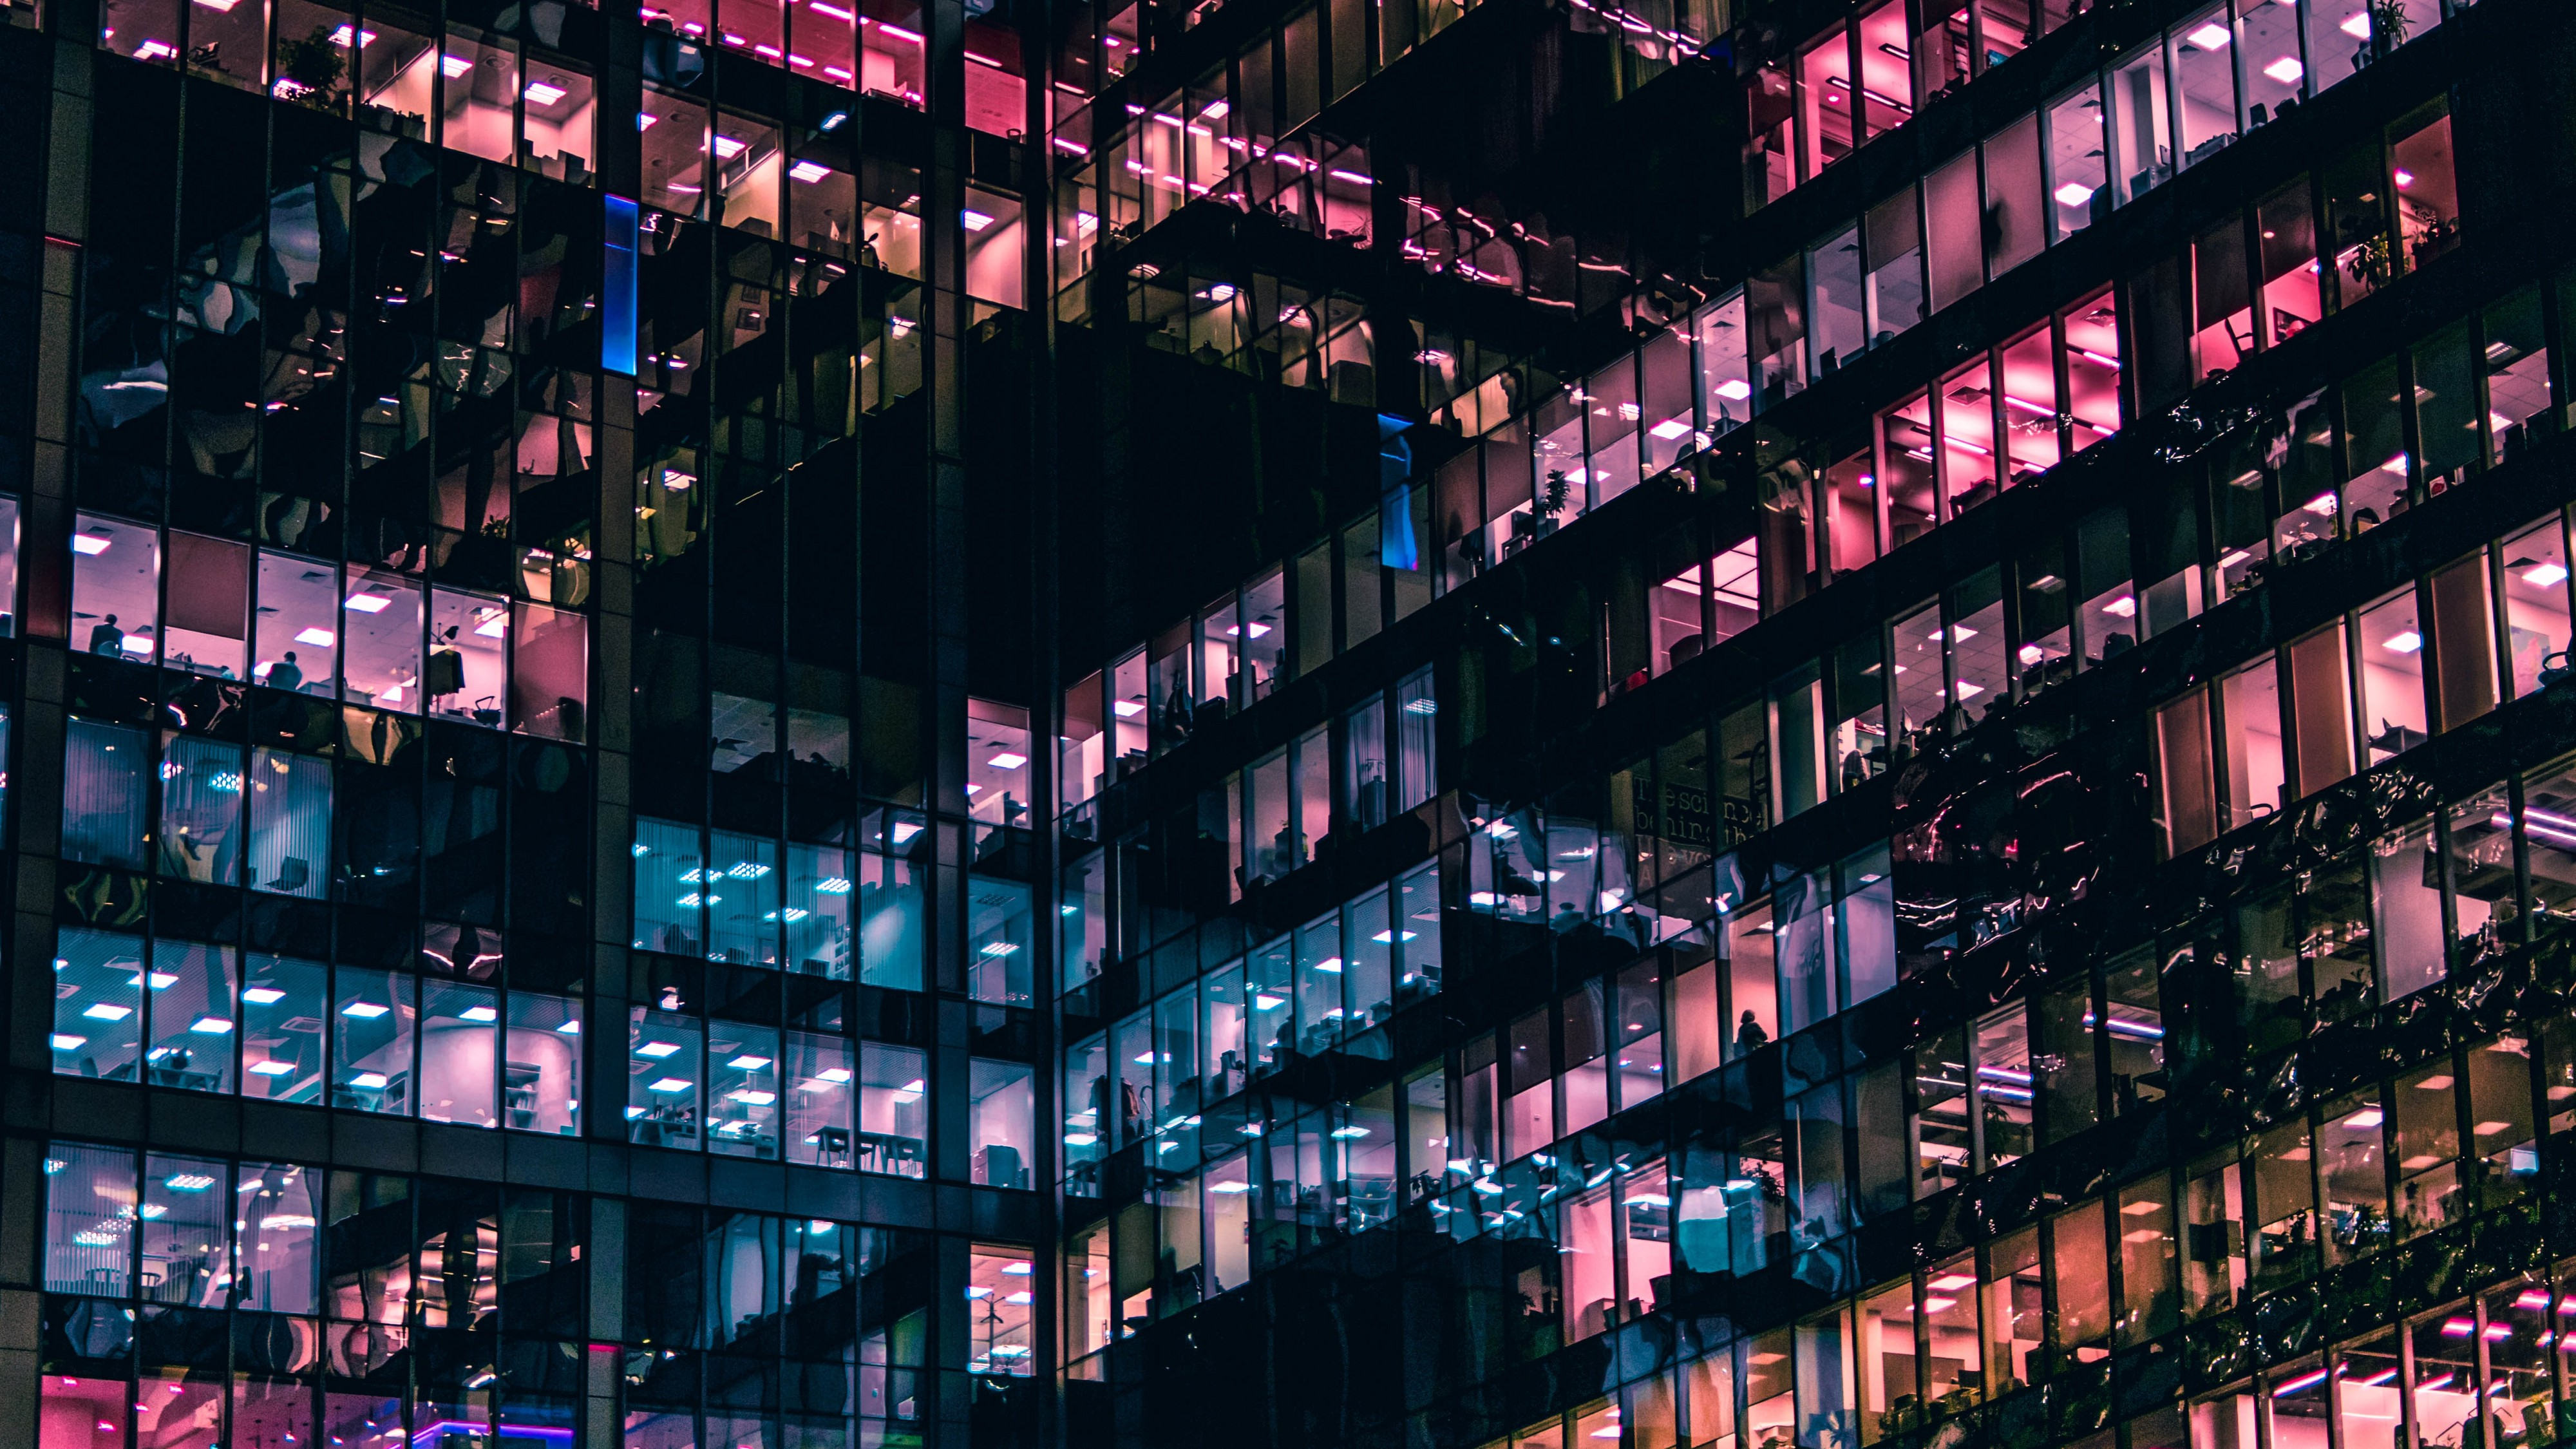 An office building at night with workers in their cubicles